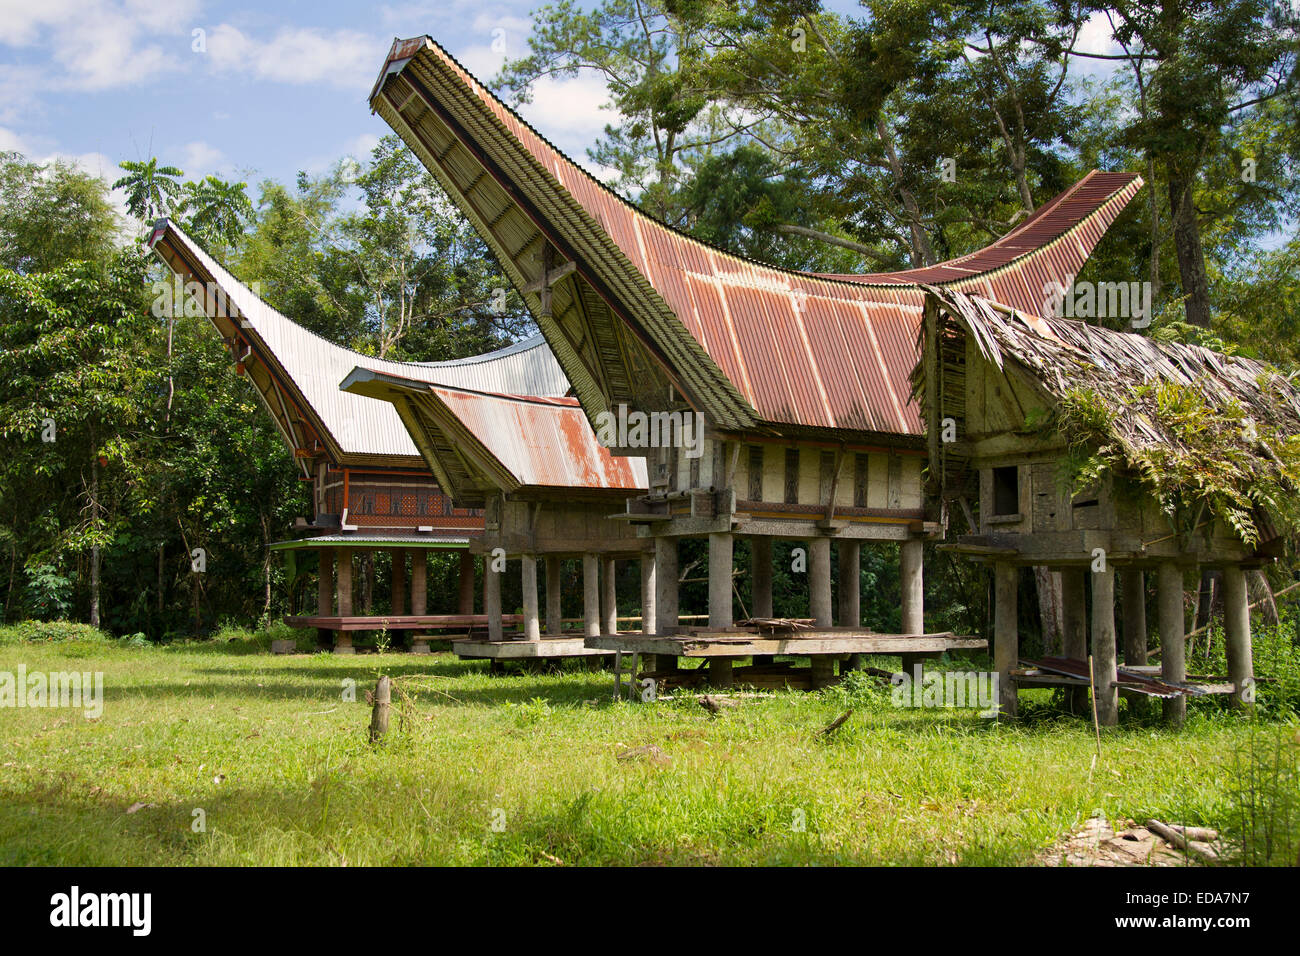 Ke'te Kesu village in Sulawesi - Stock Image